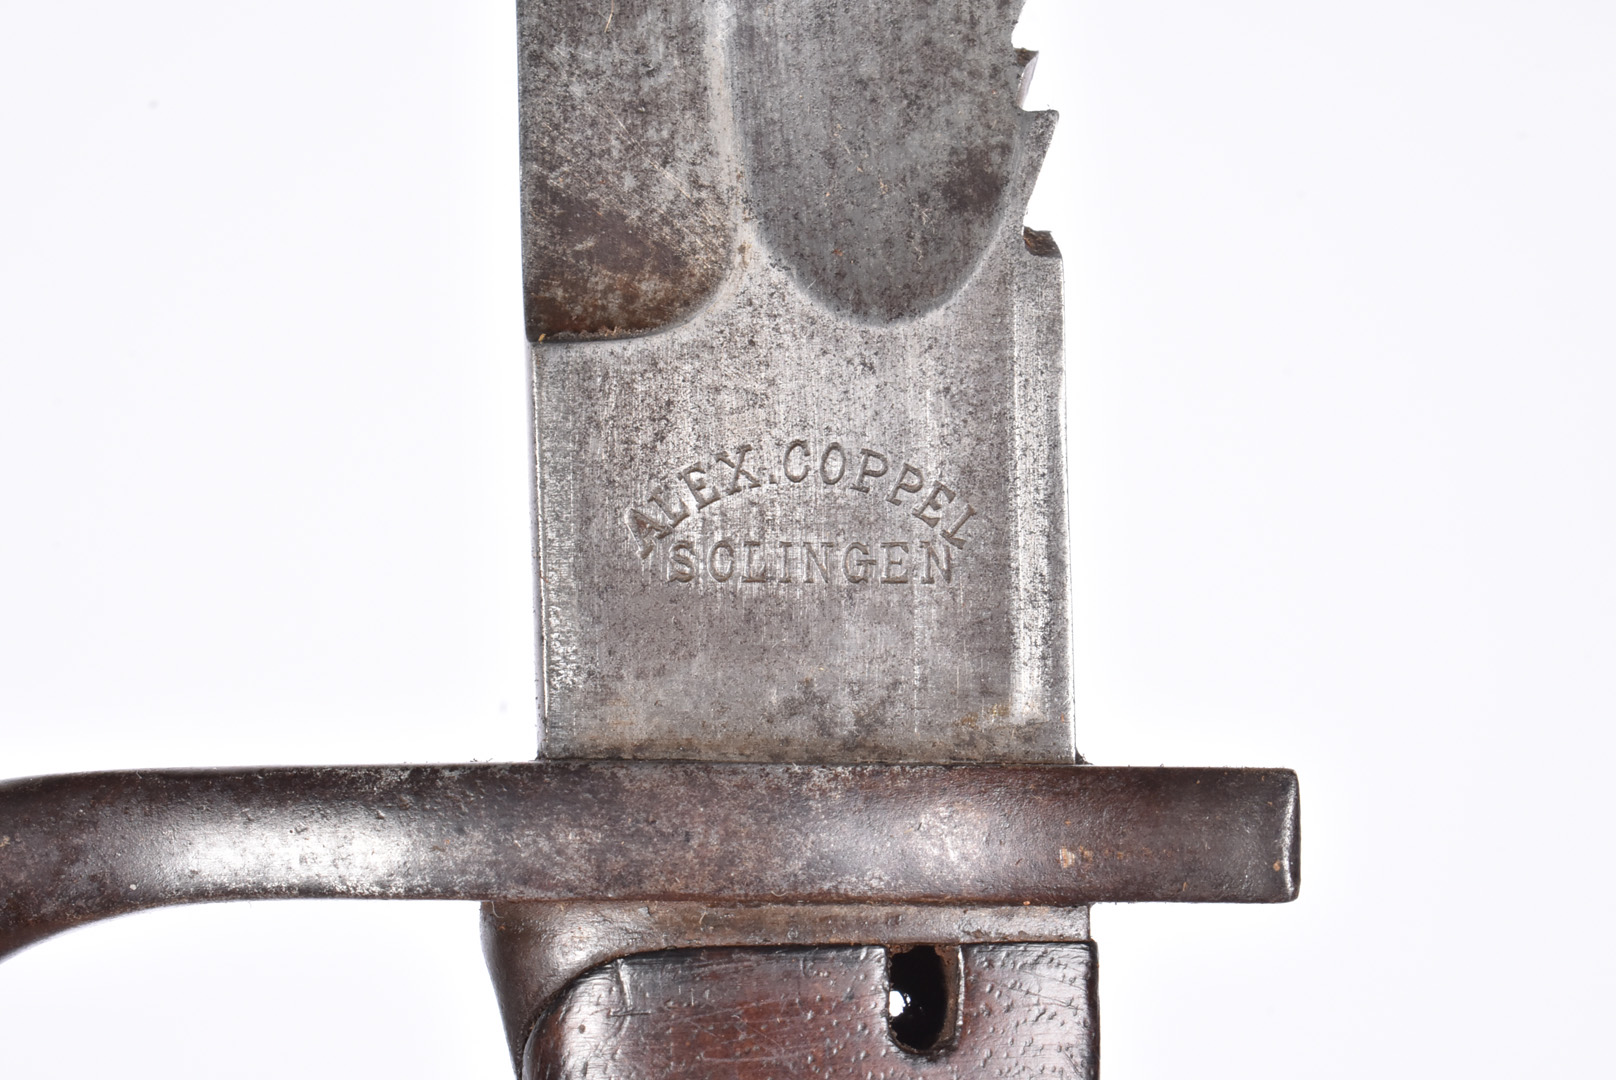 A High Ear German Butcher Sawback bayonet by Alex Coppel, dated 1915, blade 36.5cm, complete with - Image 2 of 5